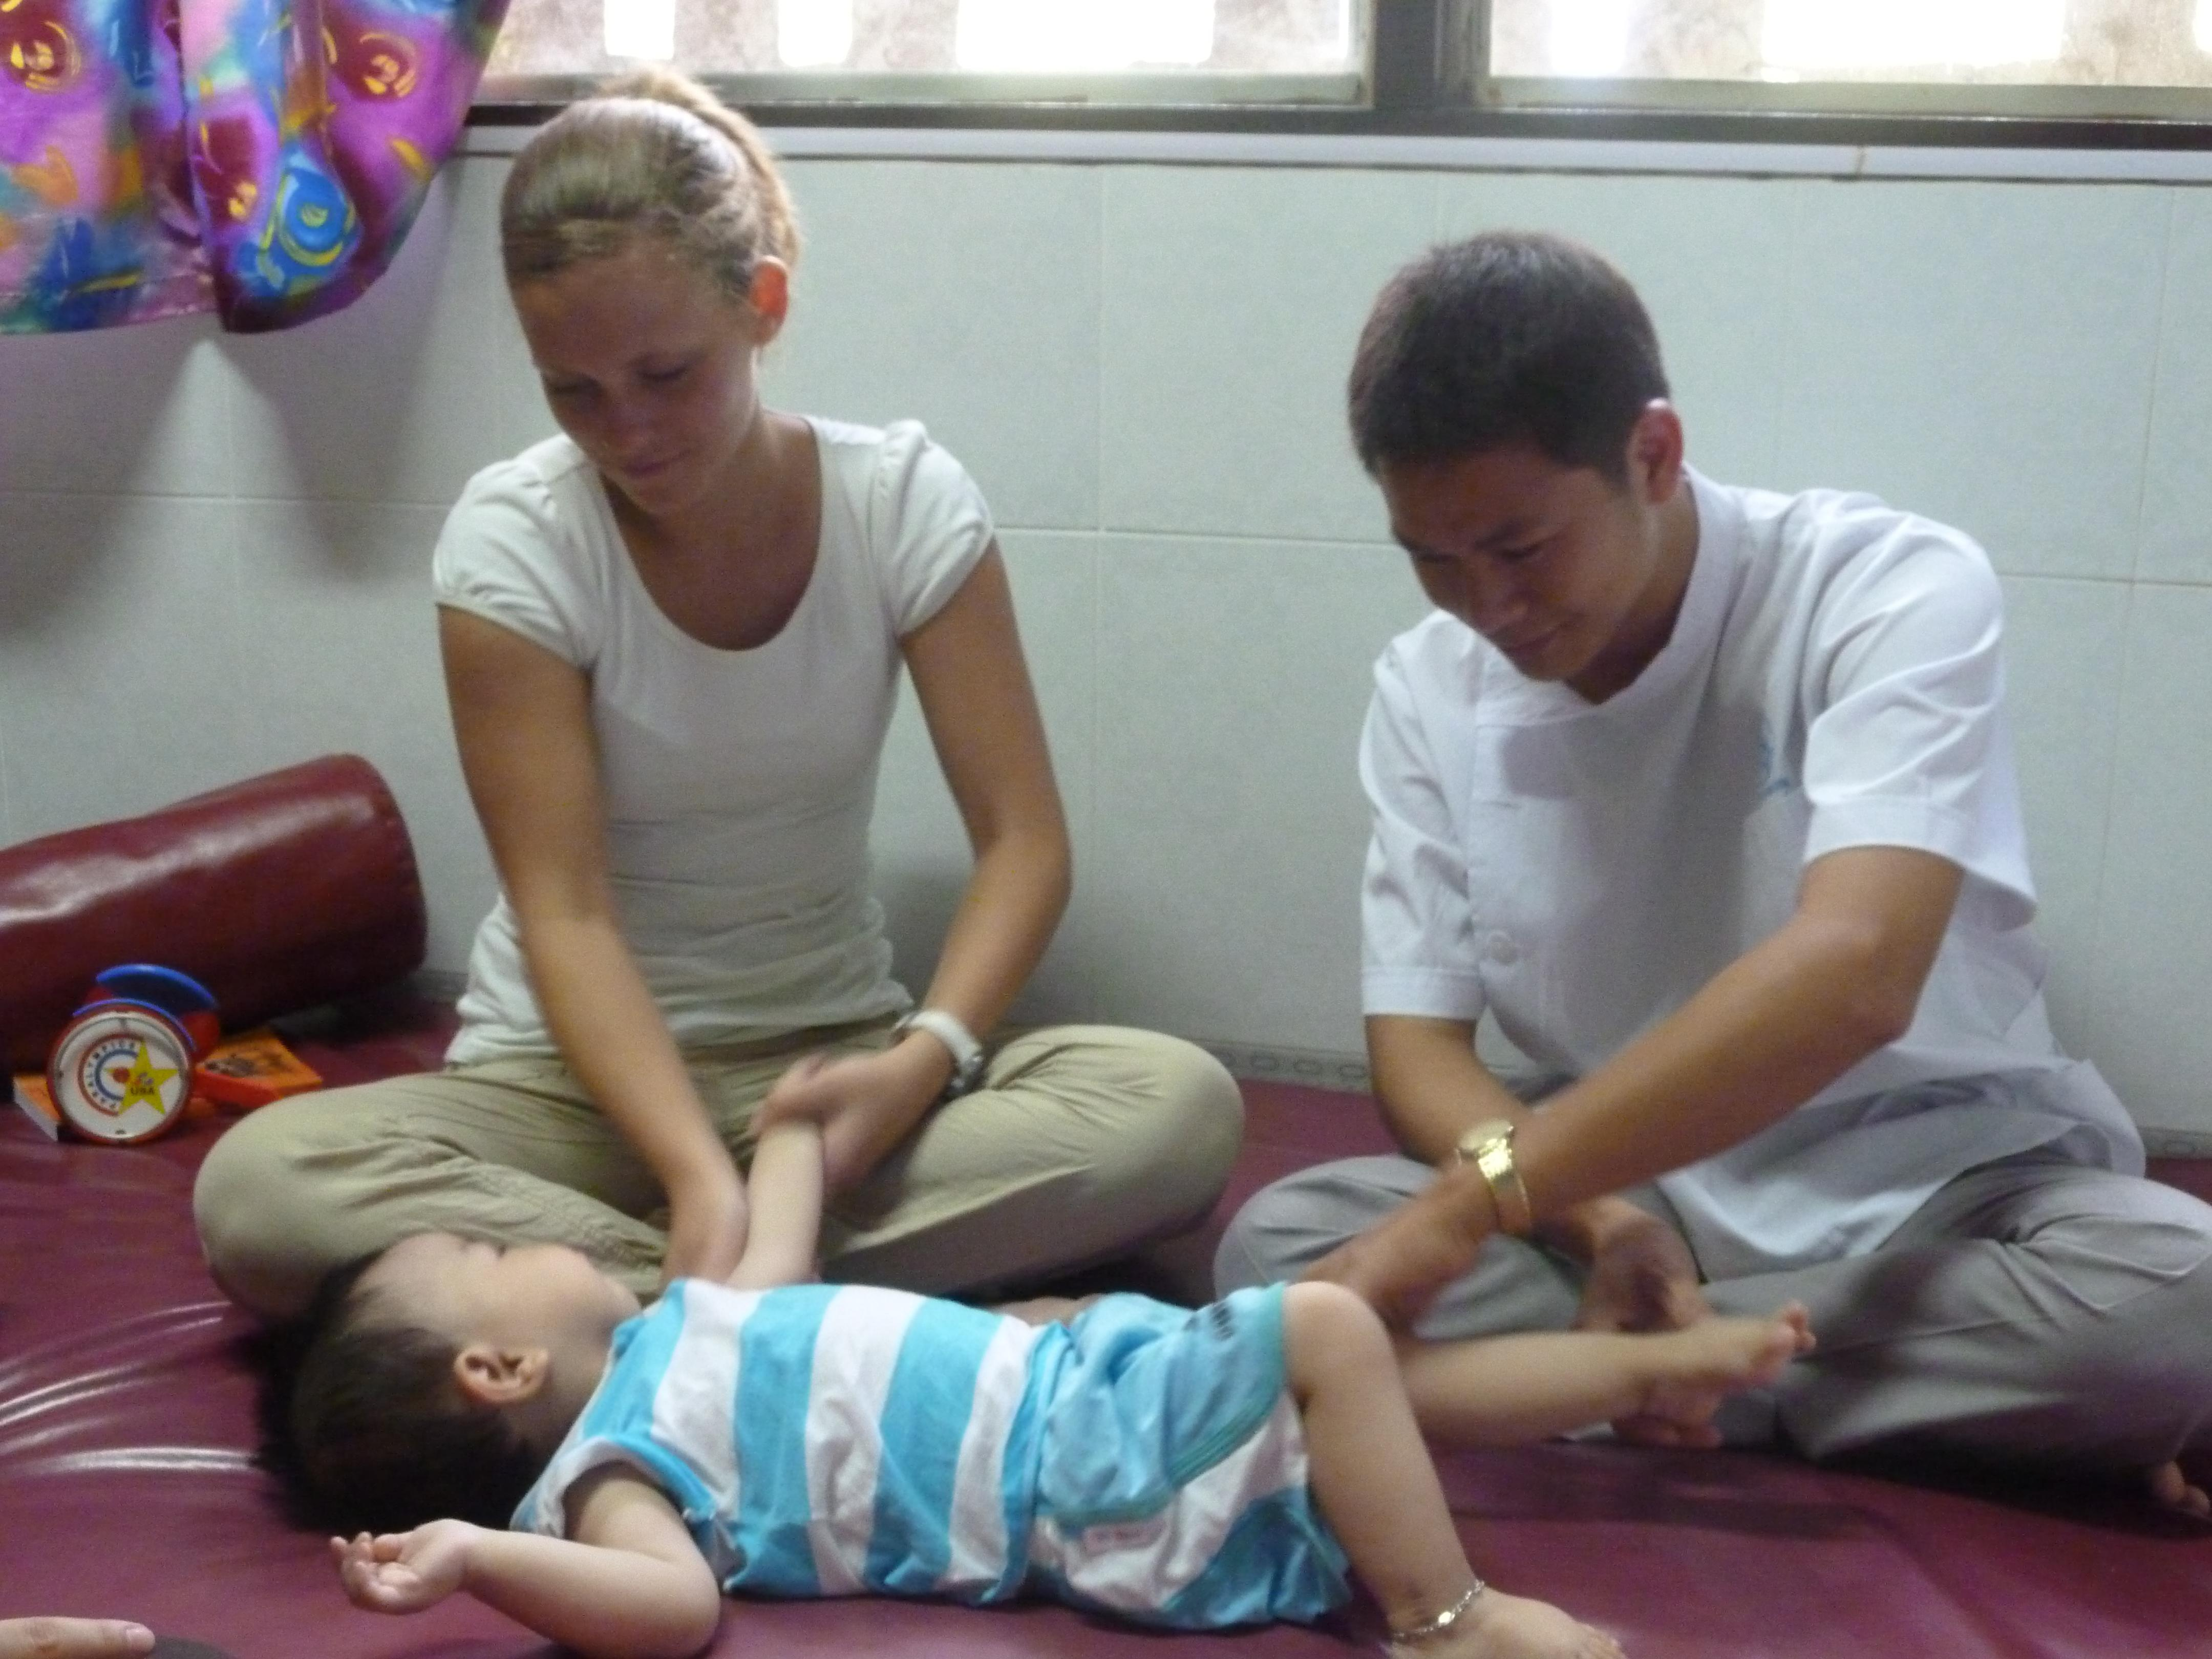 A female intern is pictured helping a local doctor encourage movement in a baby during her occupational therapy internship in Vietnam.